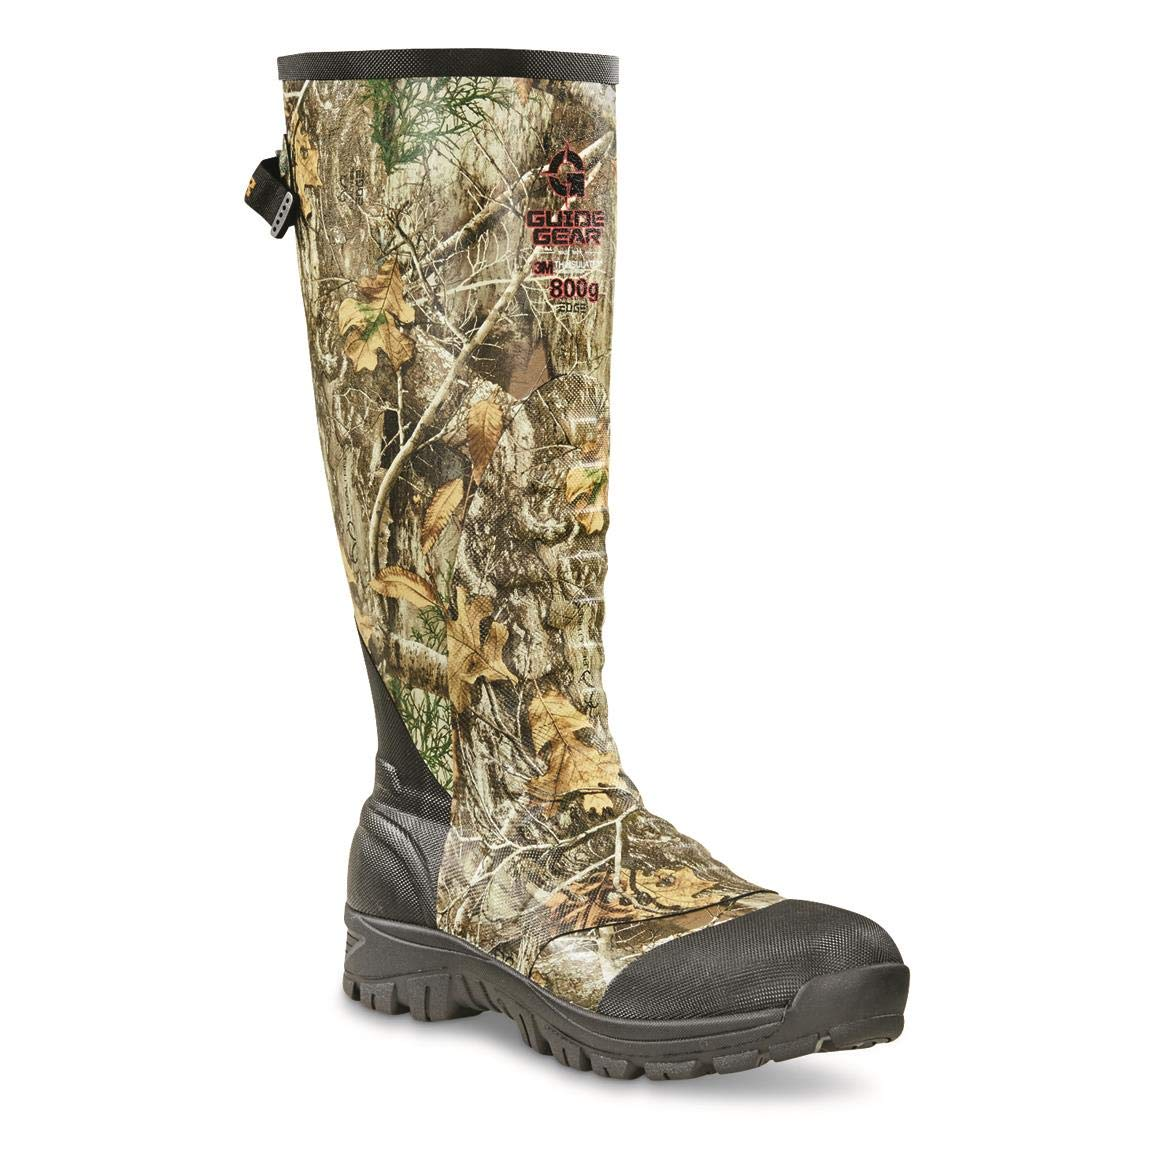 Guide Gear Men's Ankle Fit Insulated Rubber Boots, 800-gram, Realtree Edge, 11D (Medium) by Guide Gear